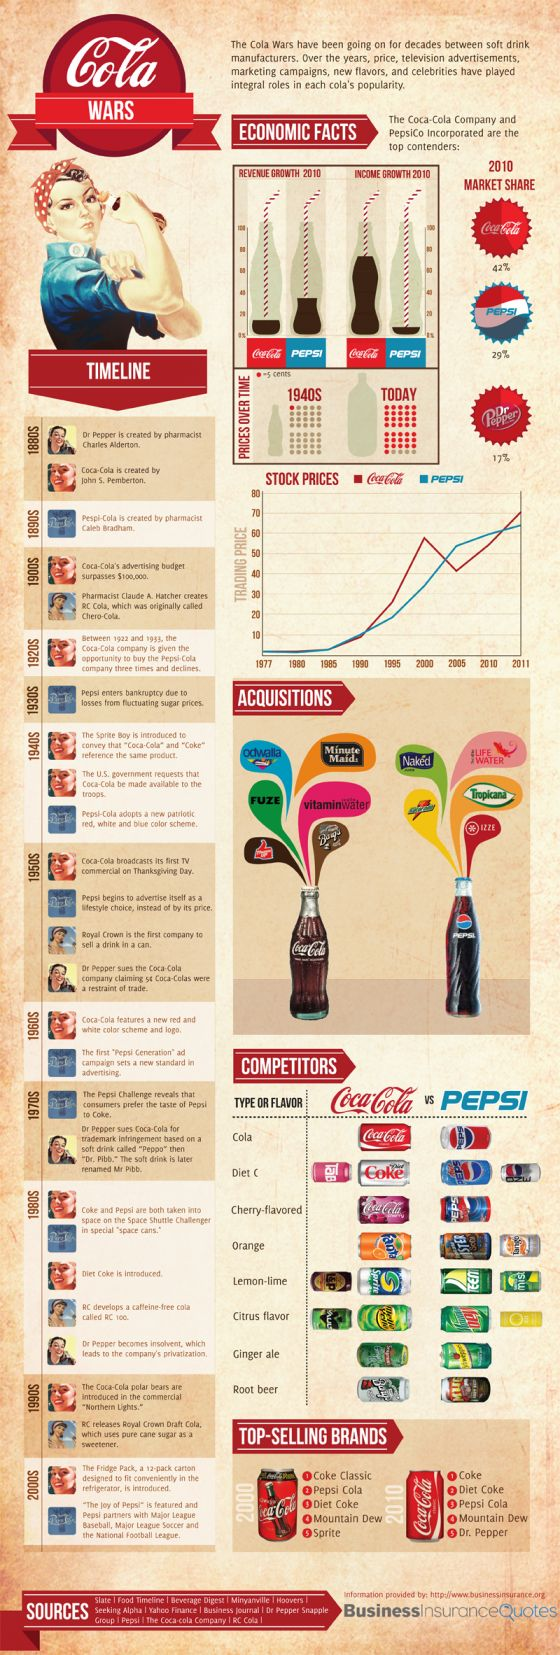 Coca Cola vs. Pepsi. An ongoing battle.